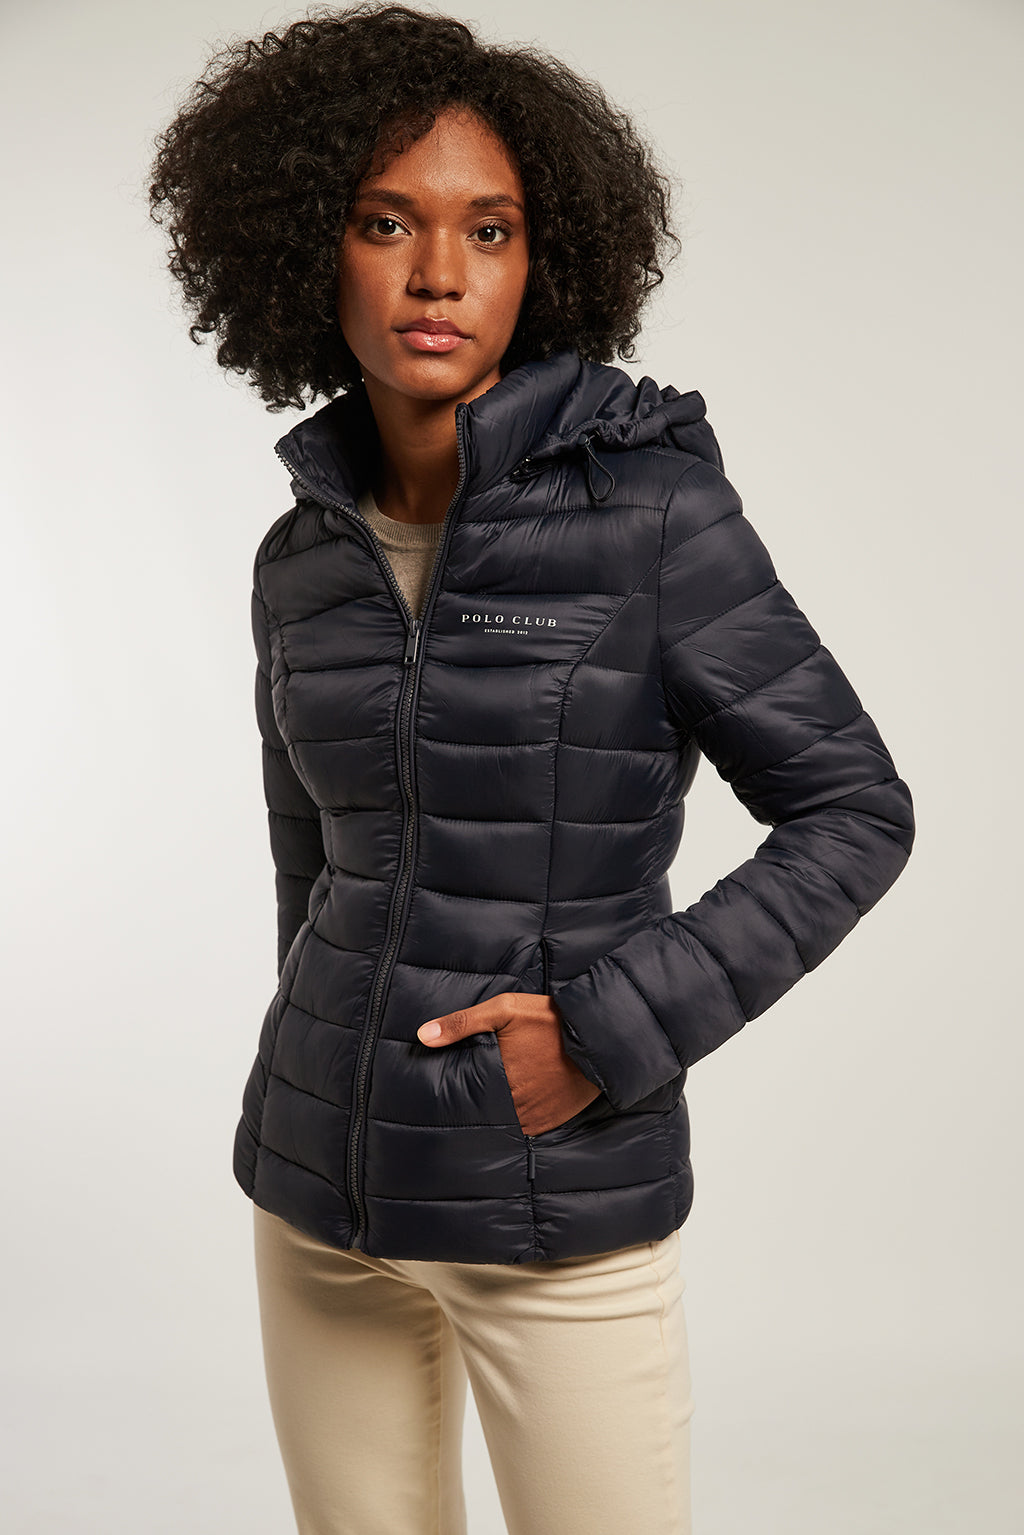 Navy blue quilted and fitted jacket with hood